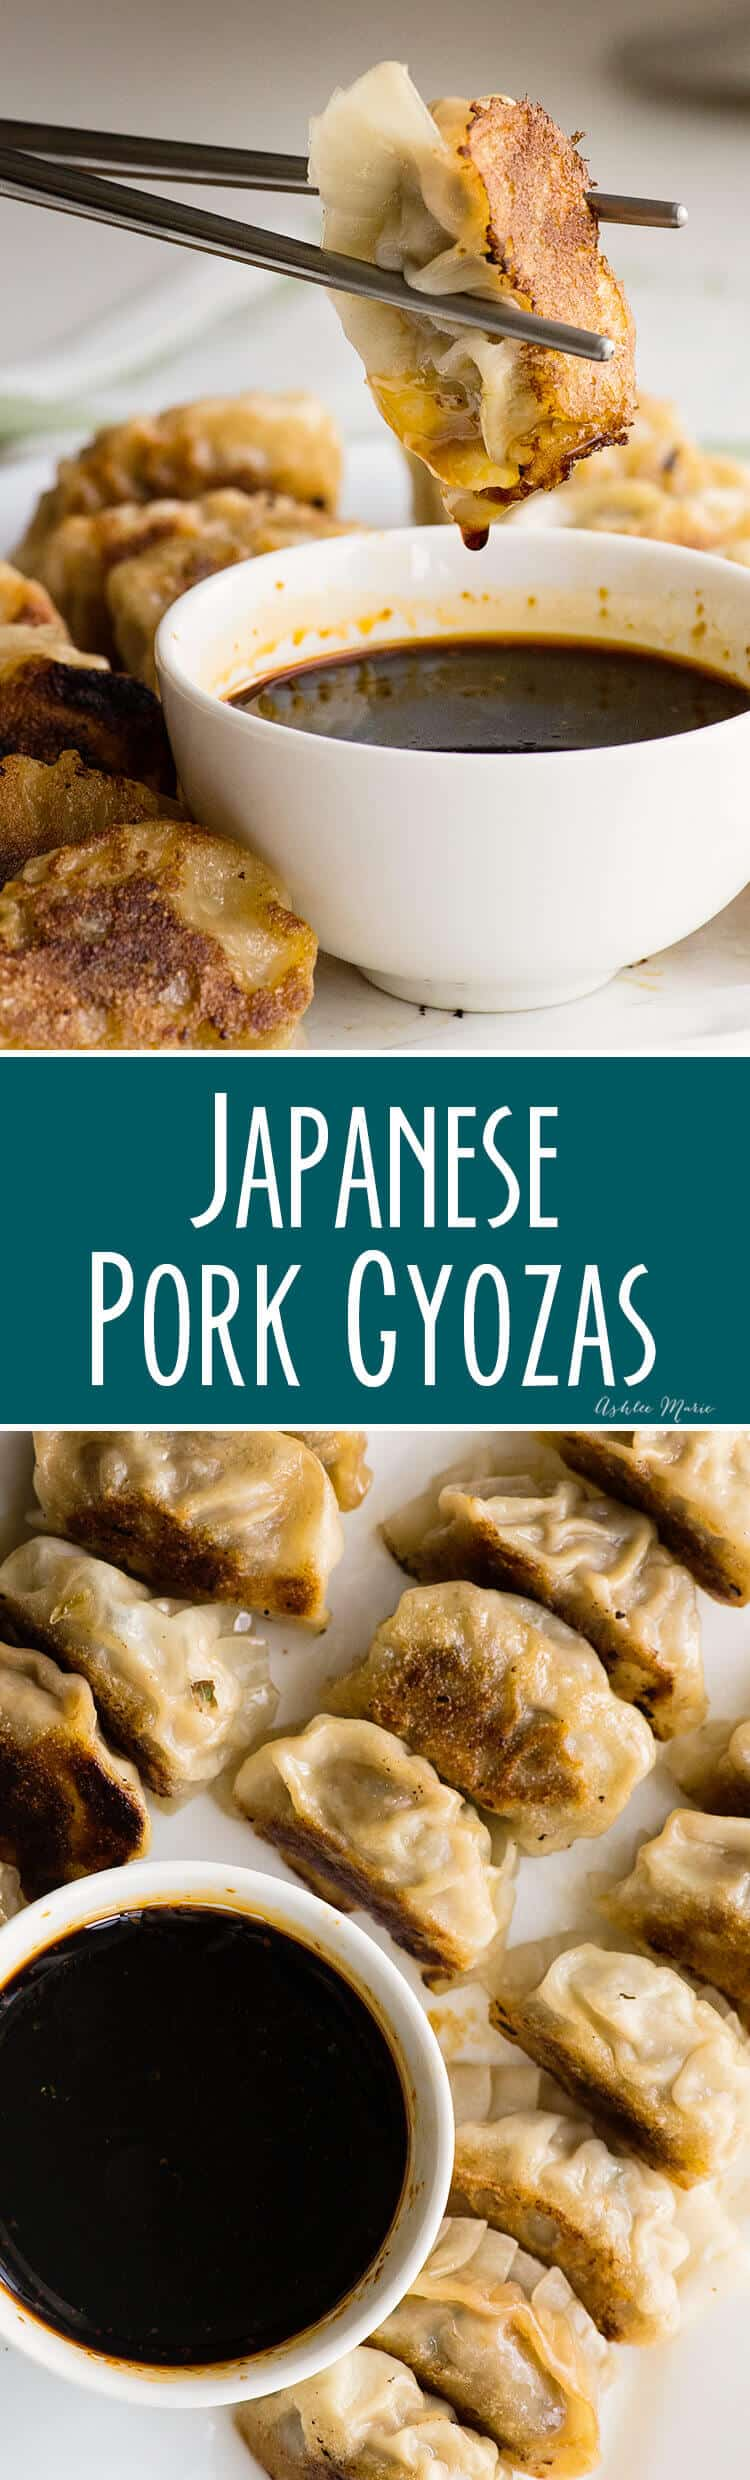 homemade pork and cabbage japanese gyoza recipe and video tutorial - these homemade pan fried dumplings are easy and delicious